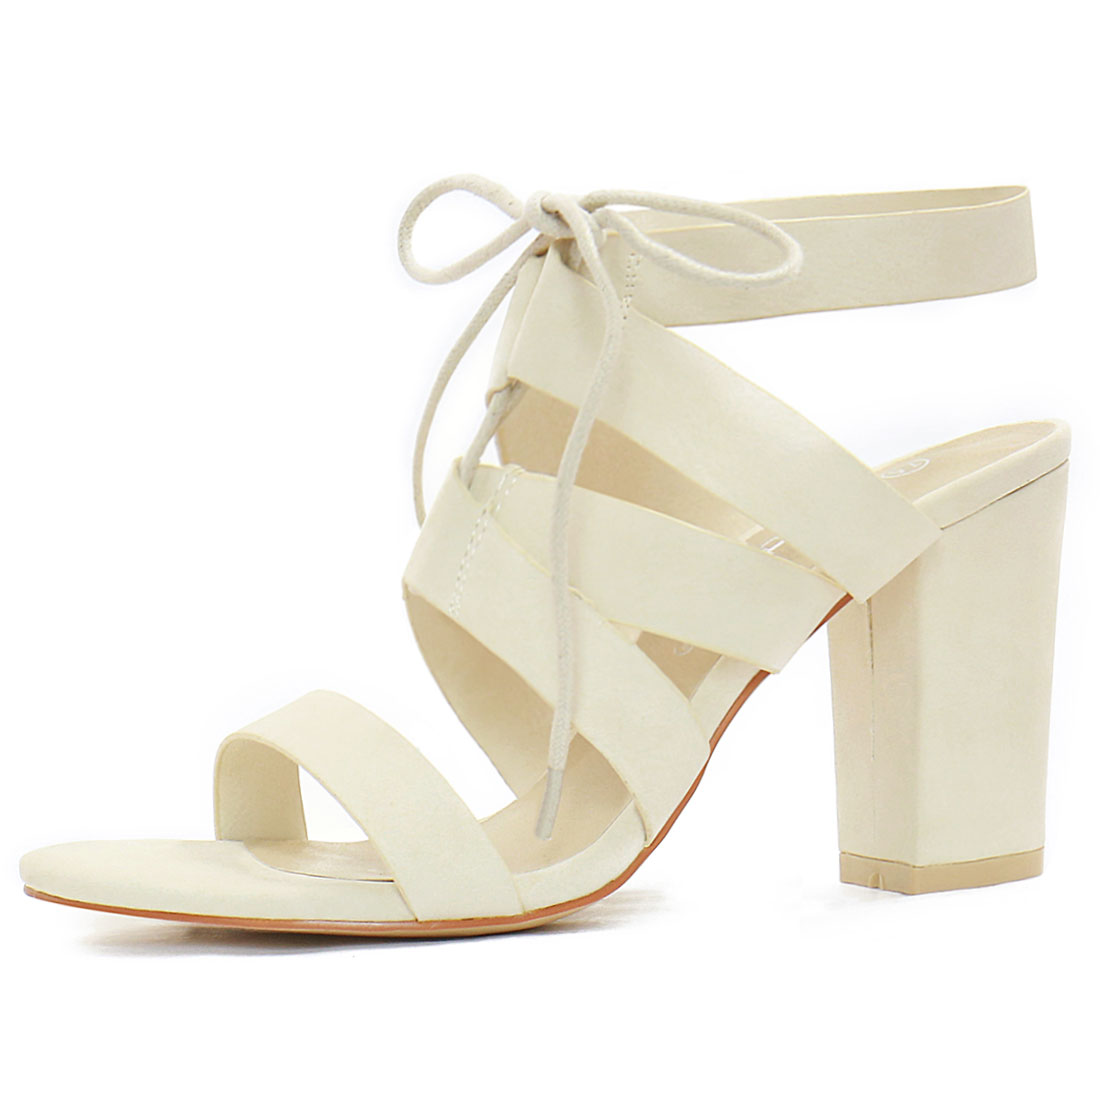 Women Chunky High Heels Cutout Detail Lace Up Sandals Ivory US 7